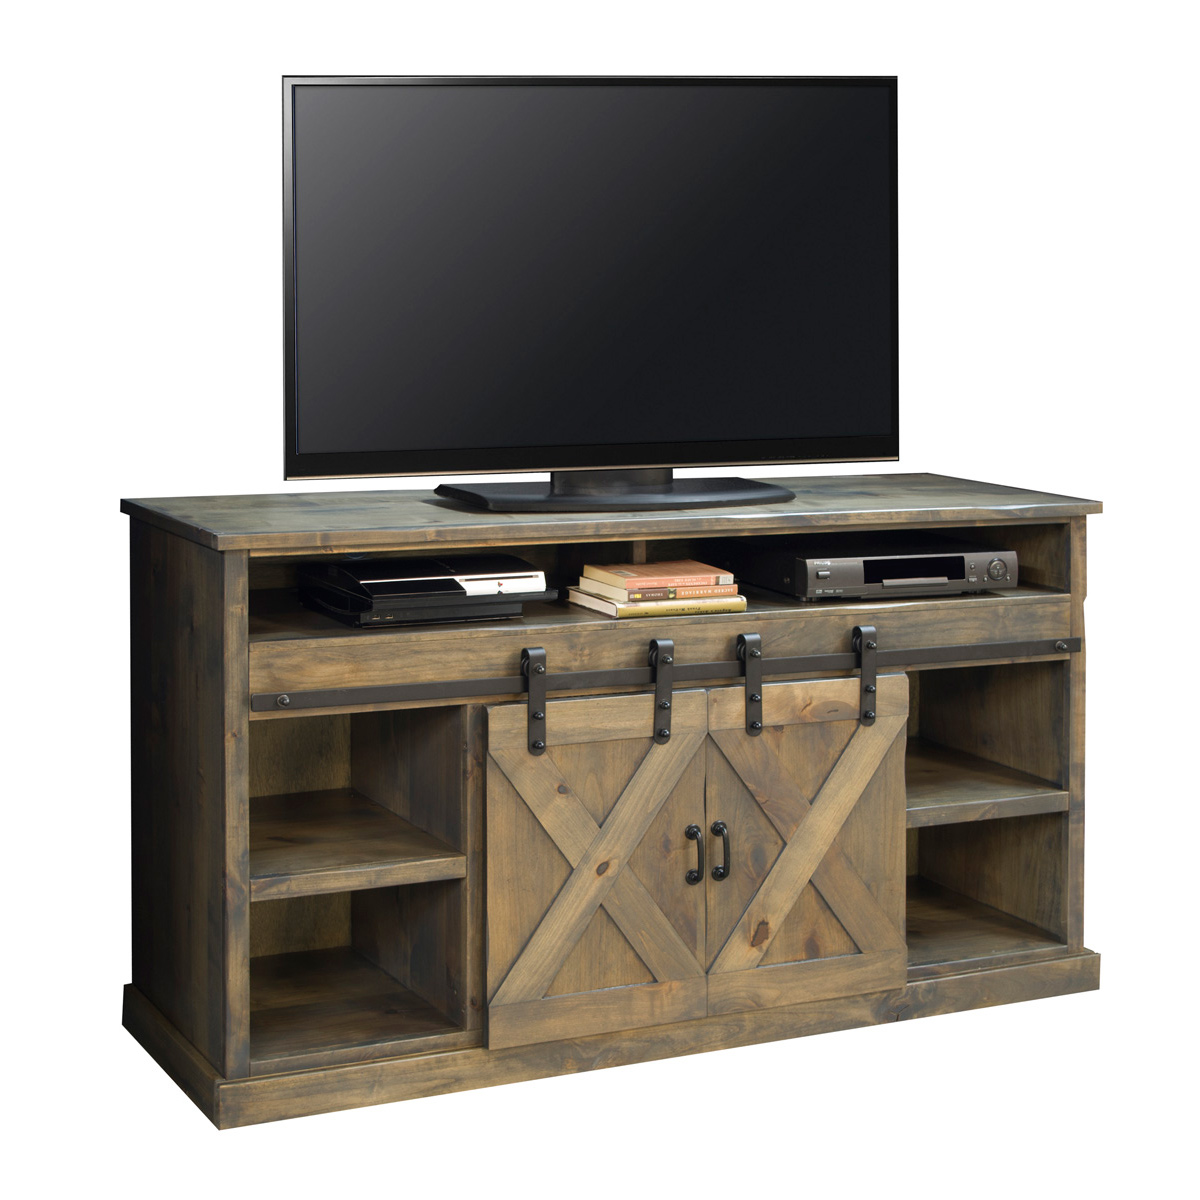 zbrk in berkshire piece cupboard unit legends distressed entertainment finish umber wall furniture pin